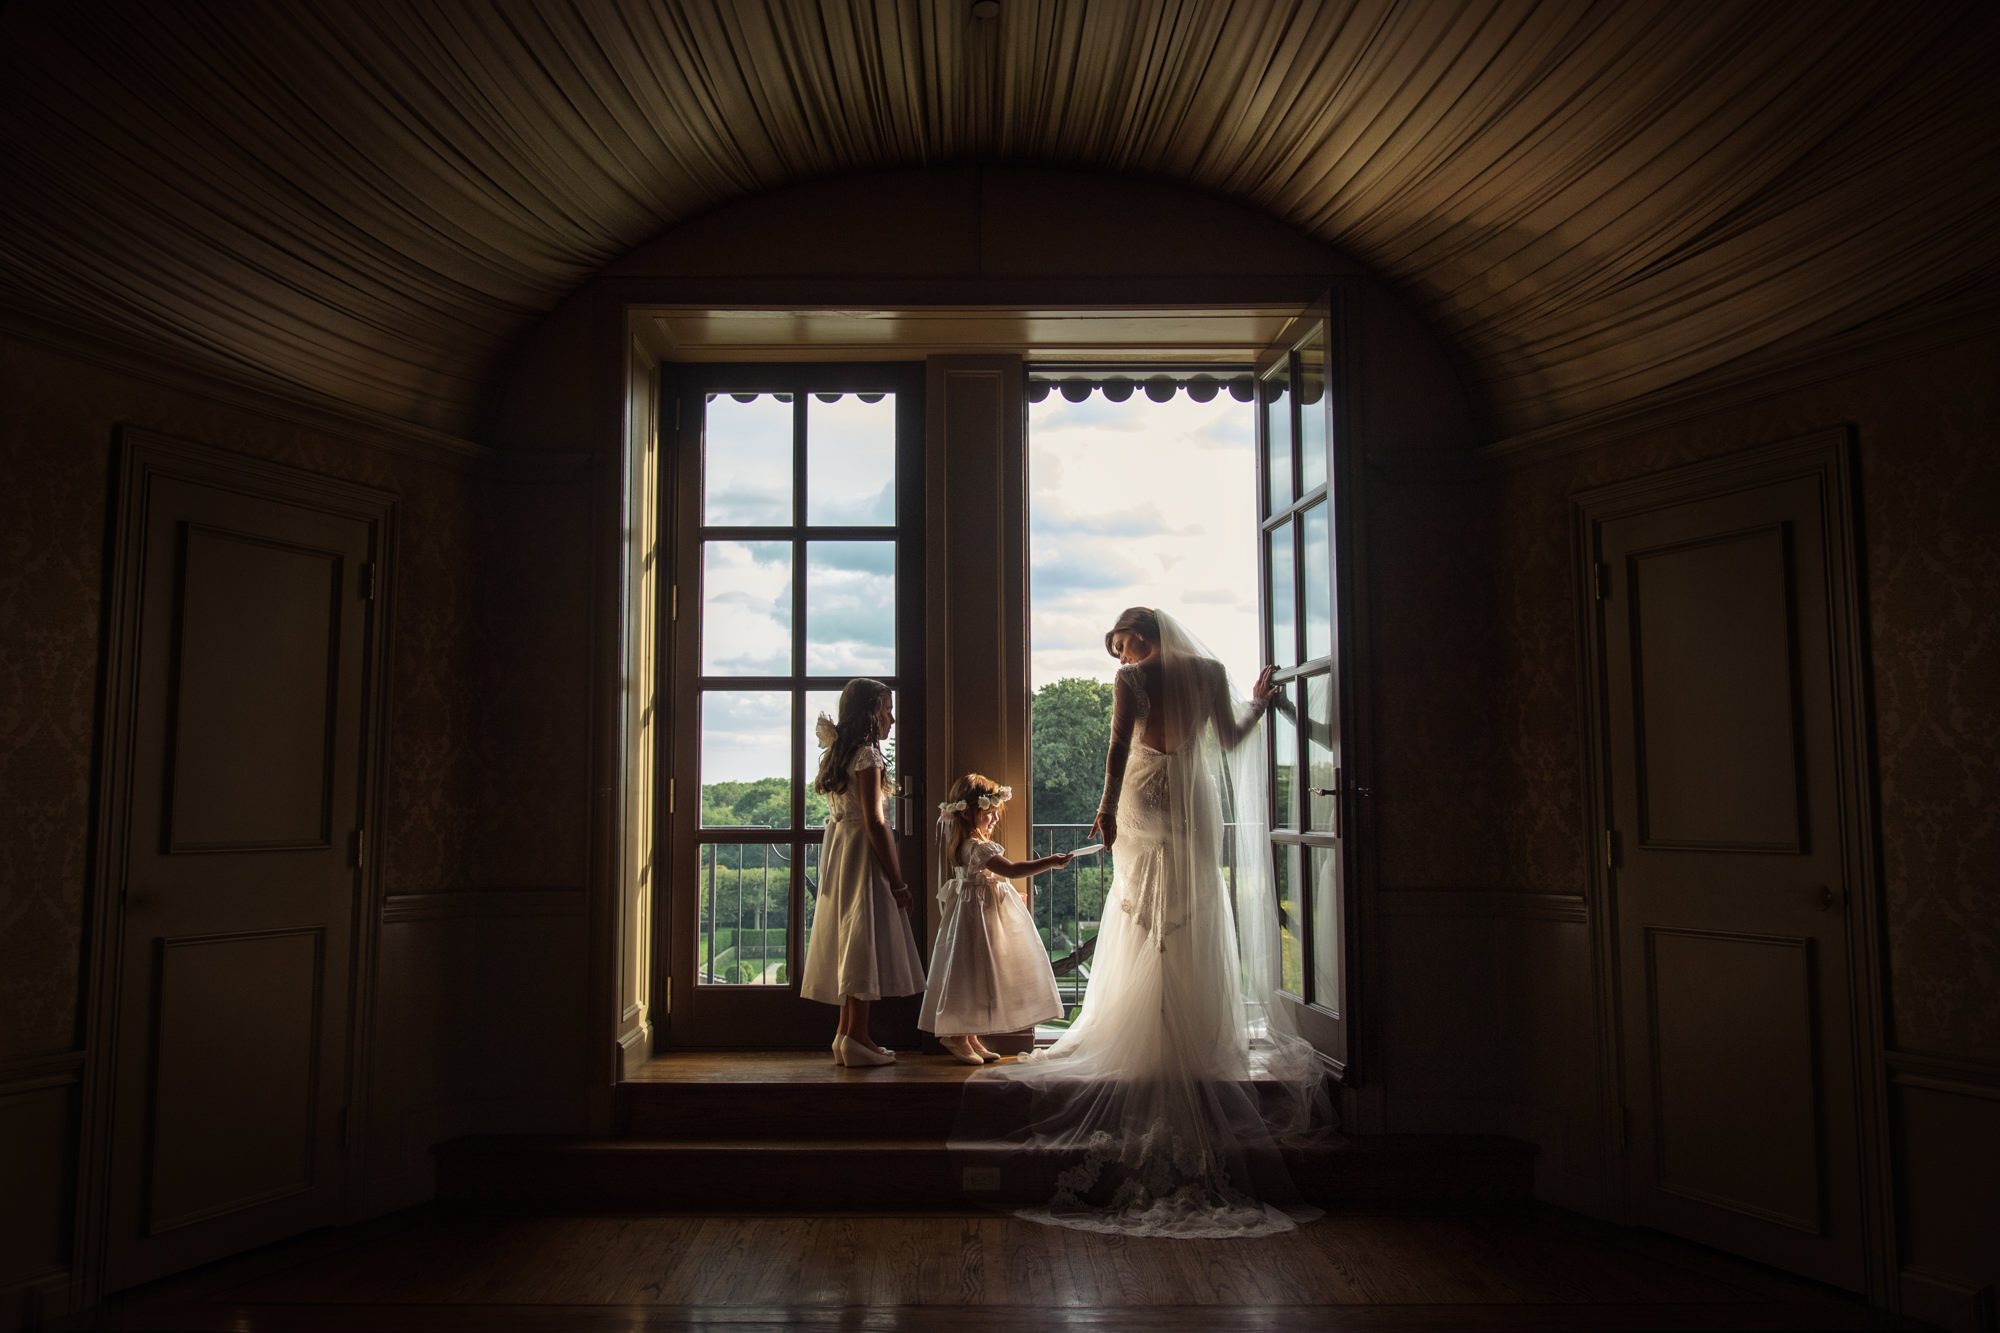 Flower girl checking bride out by window, by Cliff Mautner